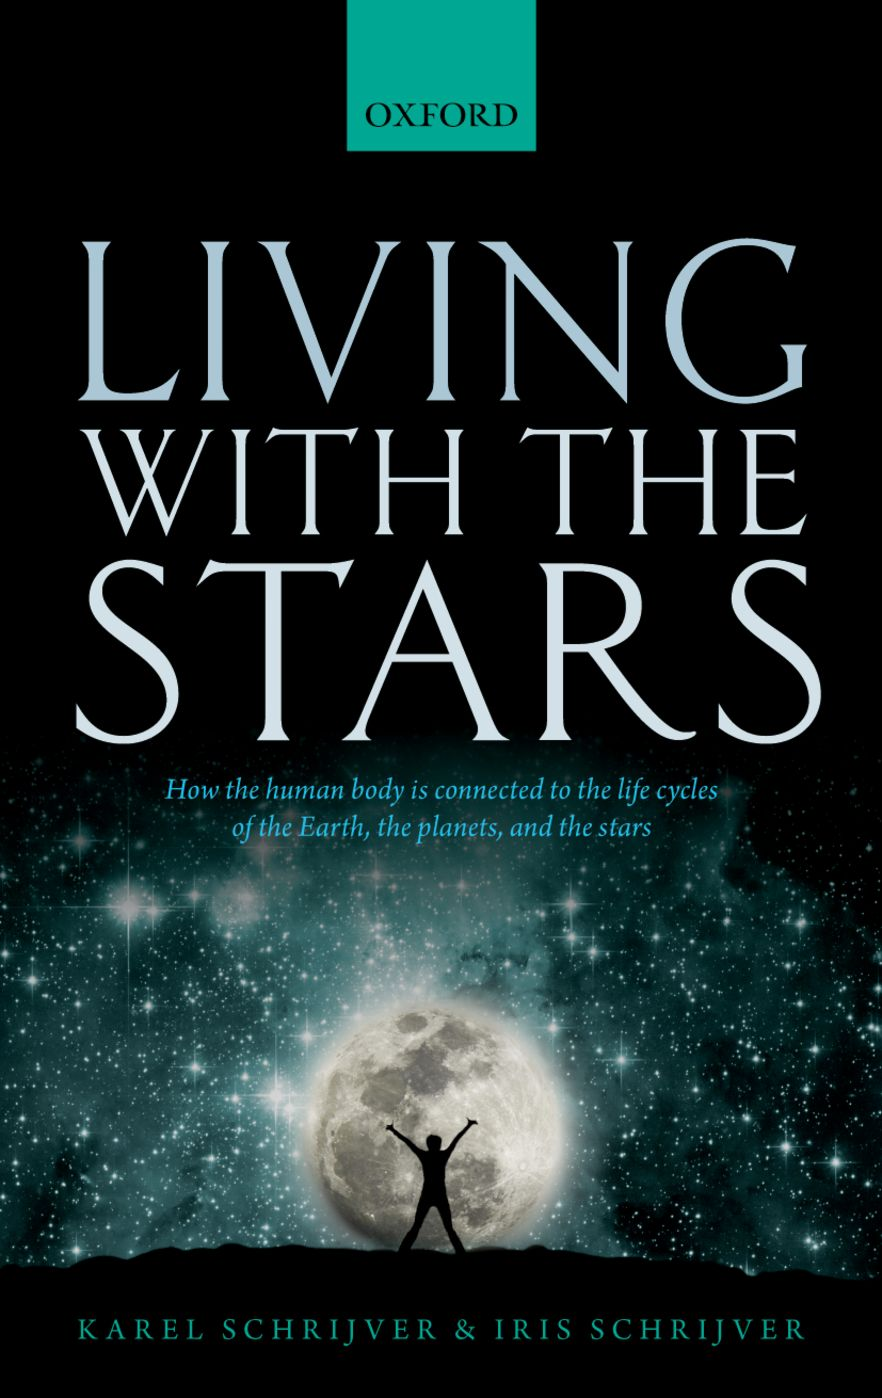 Living with the Stars: How the Human Body is Connected to the Life Cycles